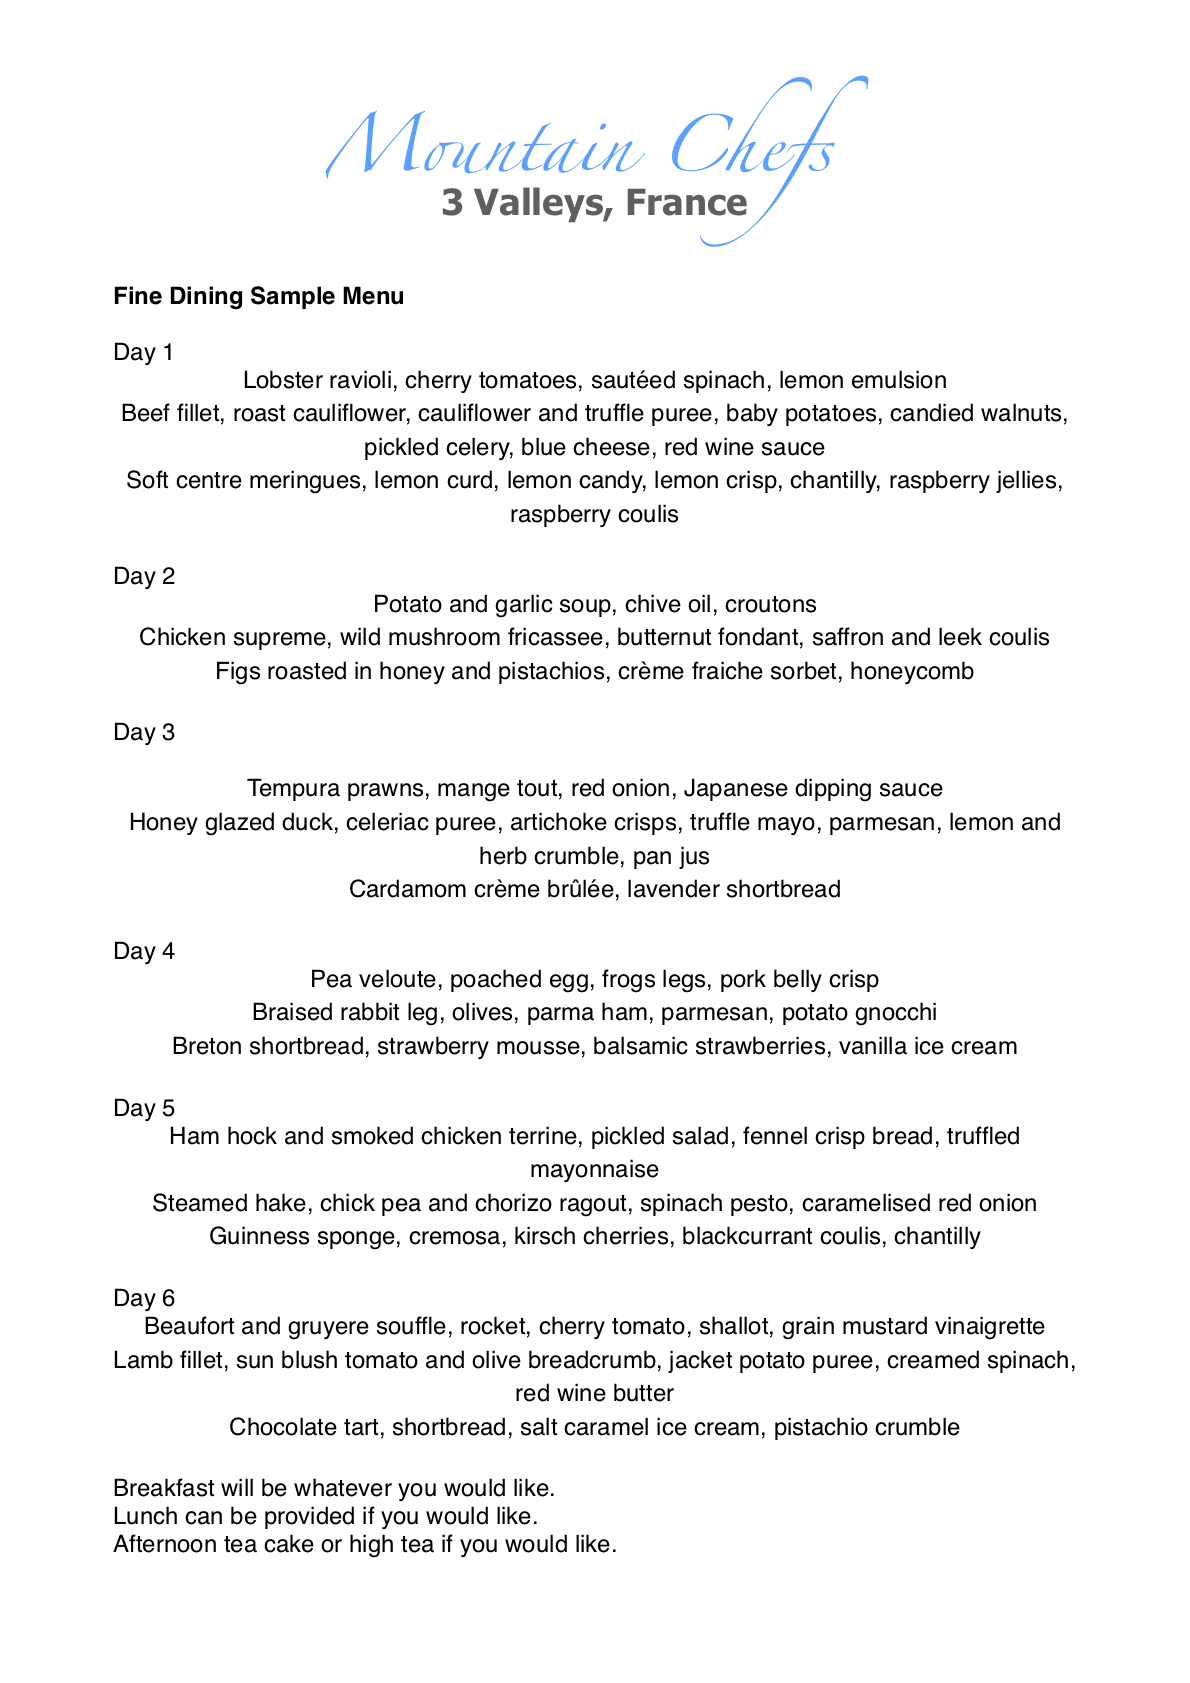 6 days sample menu for Exclusive Dining supplied by MountainChefs.net